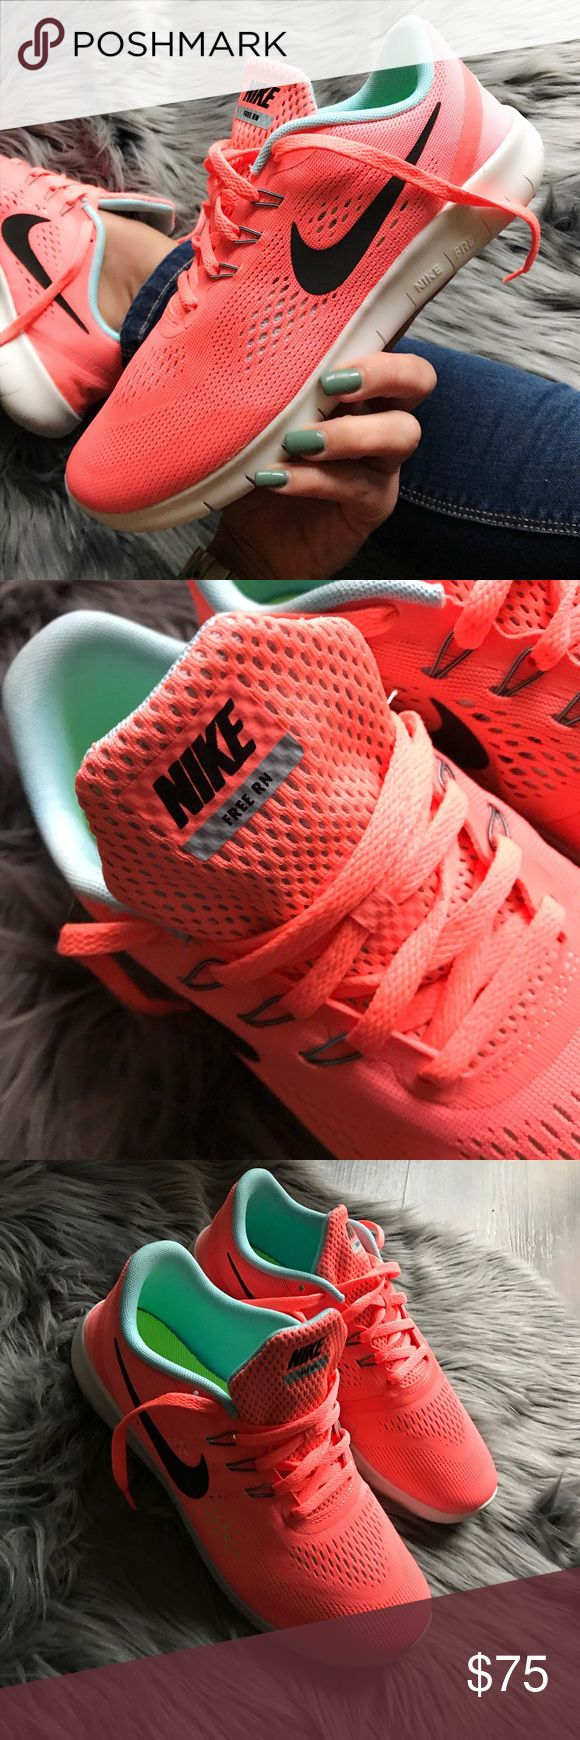 NEW 🍉 NIKE FREE RN FITS SIZE 7.5 WOMEN BRAND NEW, NIKE FREE! Cute, cozy & comfy NIKES | SCRUMPTIOUS WATERMELON! 🍉💦 Original NIKE box no lid.   ORDER YOUR WOMANS SHOE SIZE 🍉 6 y = 7.5 WOMEN  ALL SIZES LISTED ACCORDING TO NIKE'S SIZE CHART. 🍉  Ships same or next day from my smoke free home.   PRICED FIRM, offers will be considered through the offer button only. Bundle to save. 🍉💦  100% authentic & direct from NIKE Nike Shoes Athletic Shoes